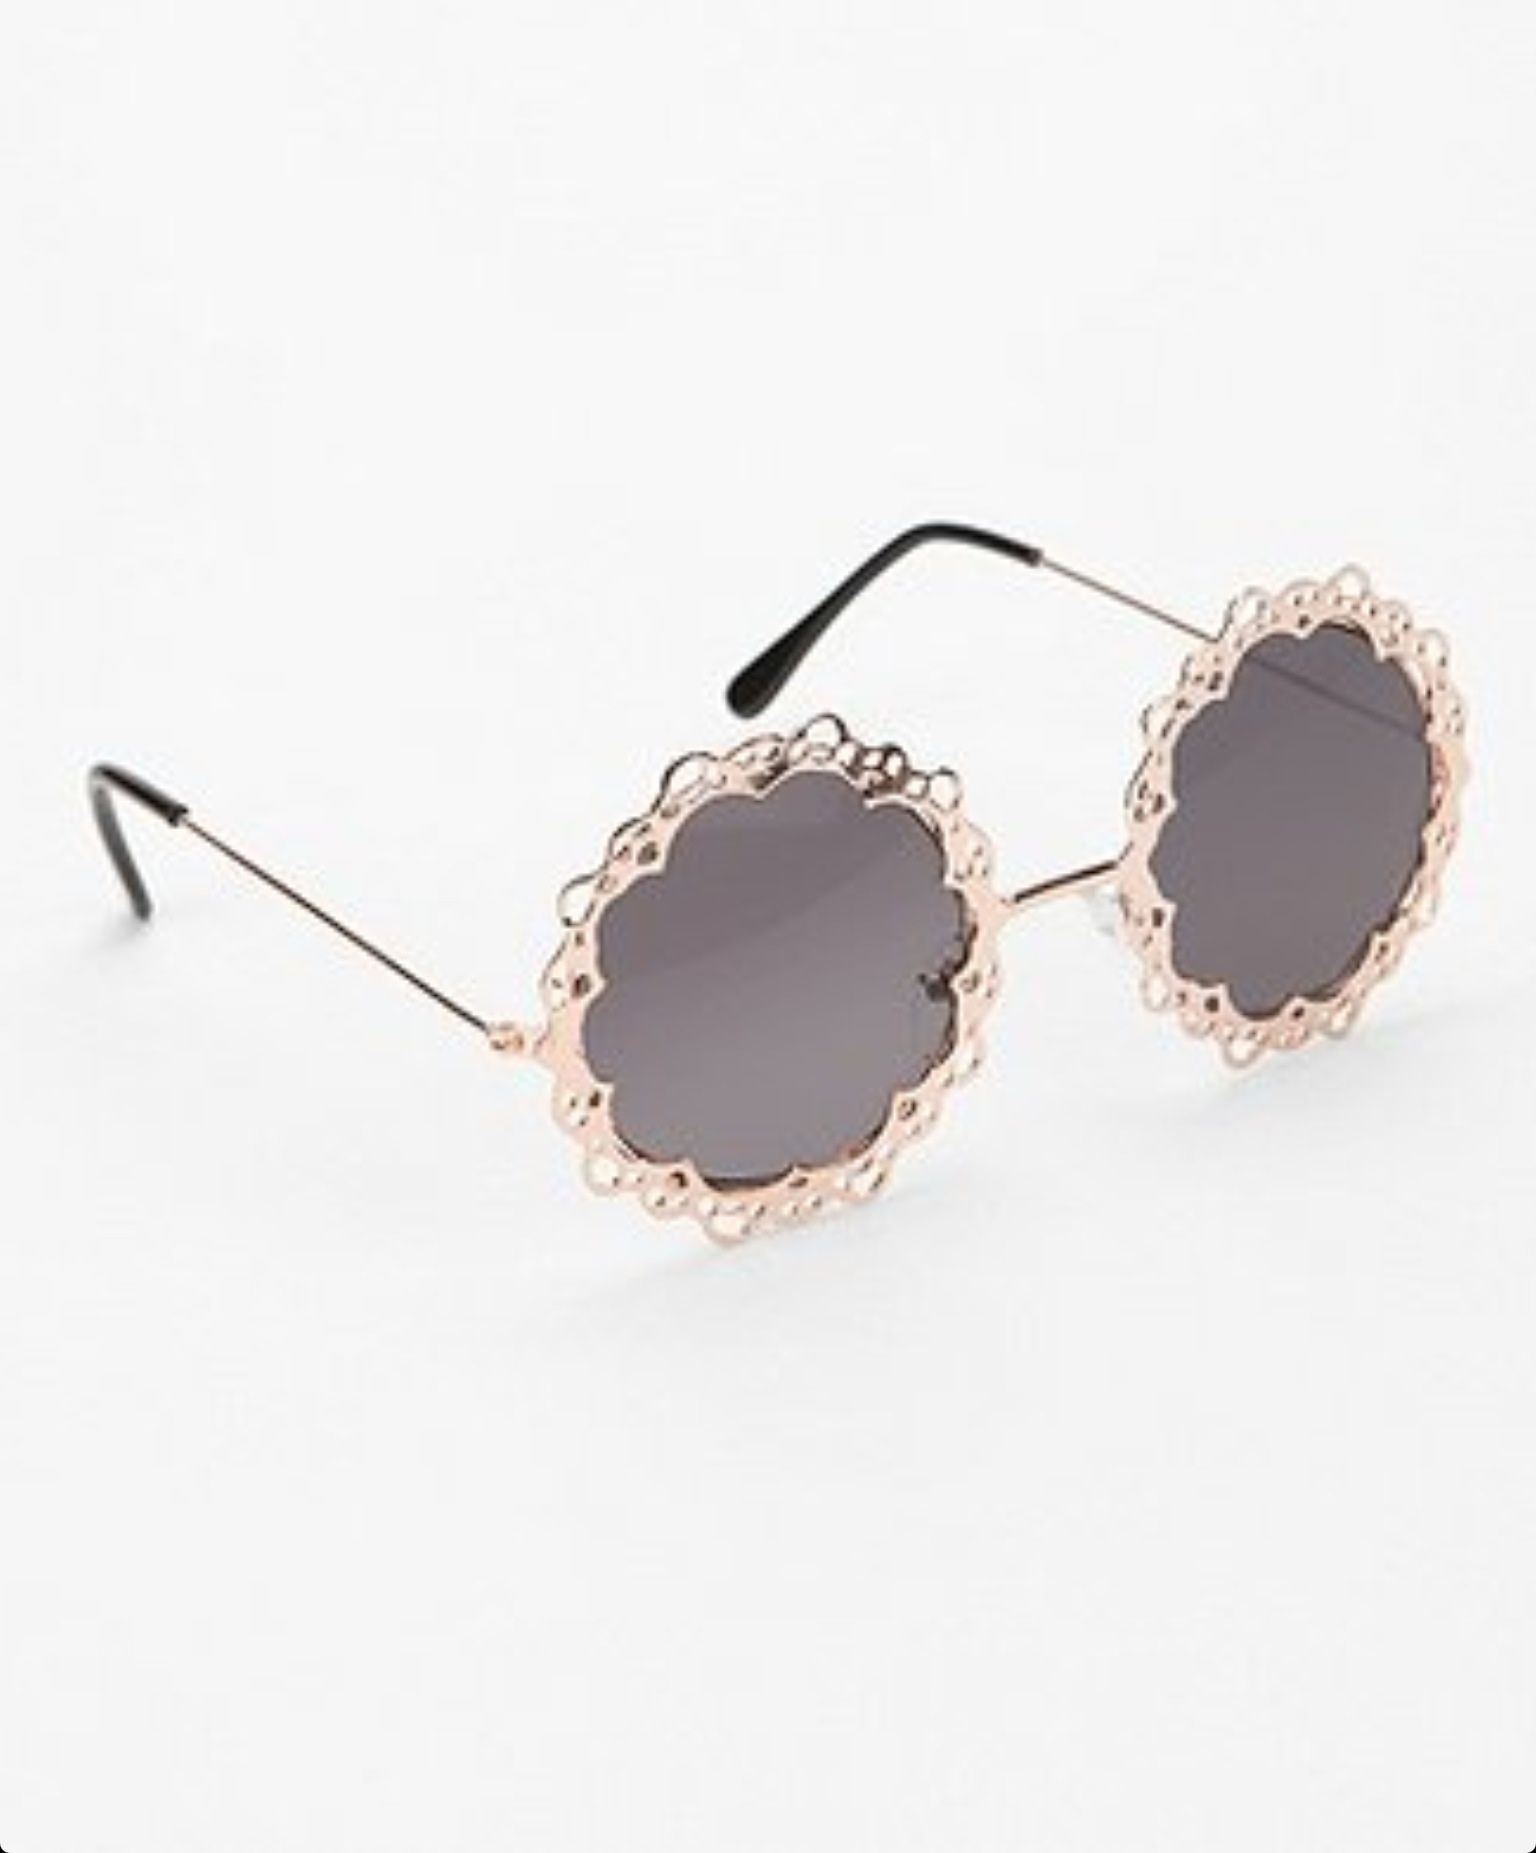 b8d1ded06f Urban Outfitters Love Lace Sunglasses